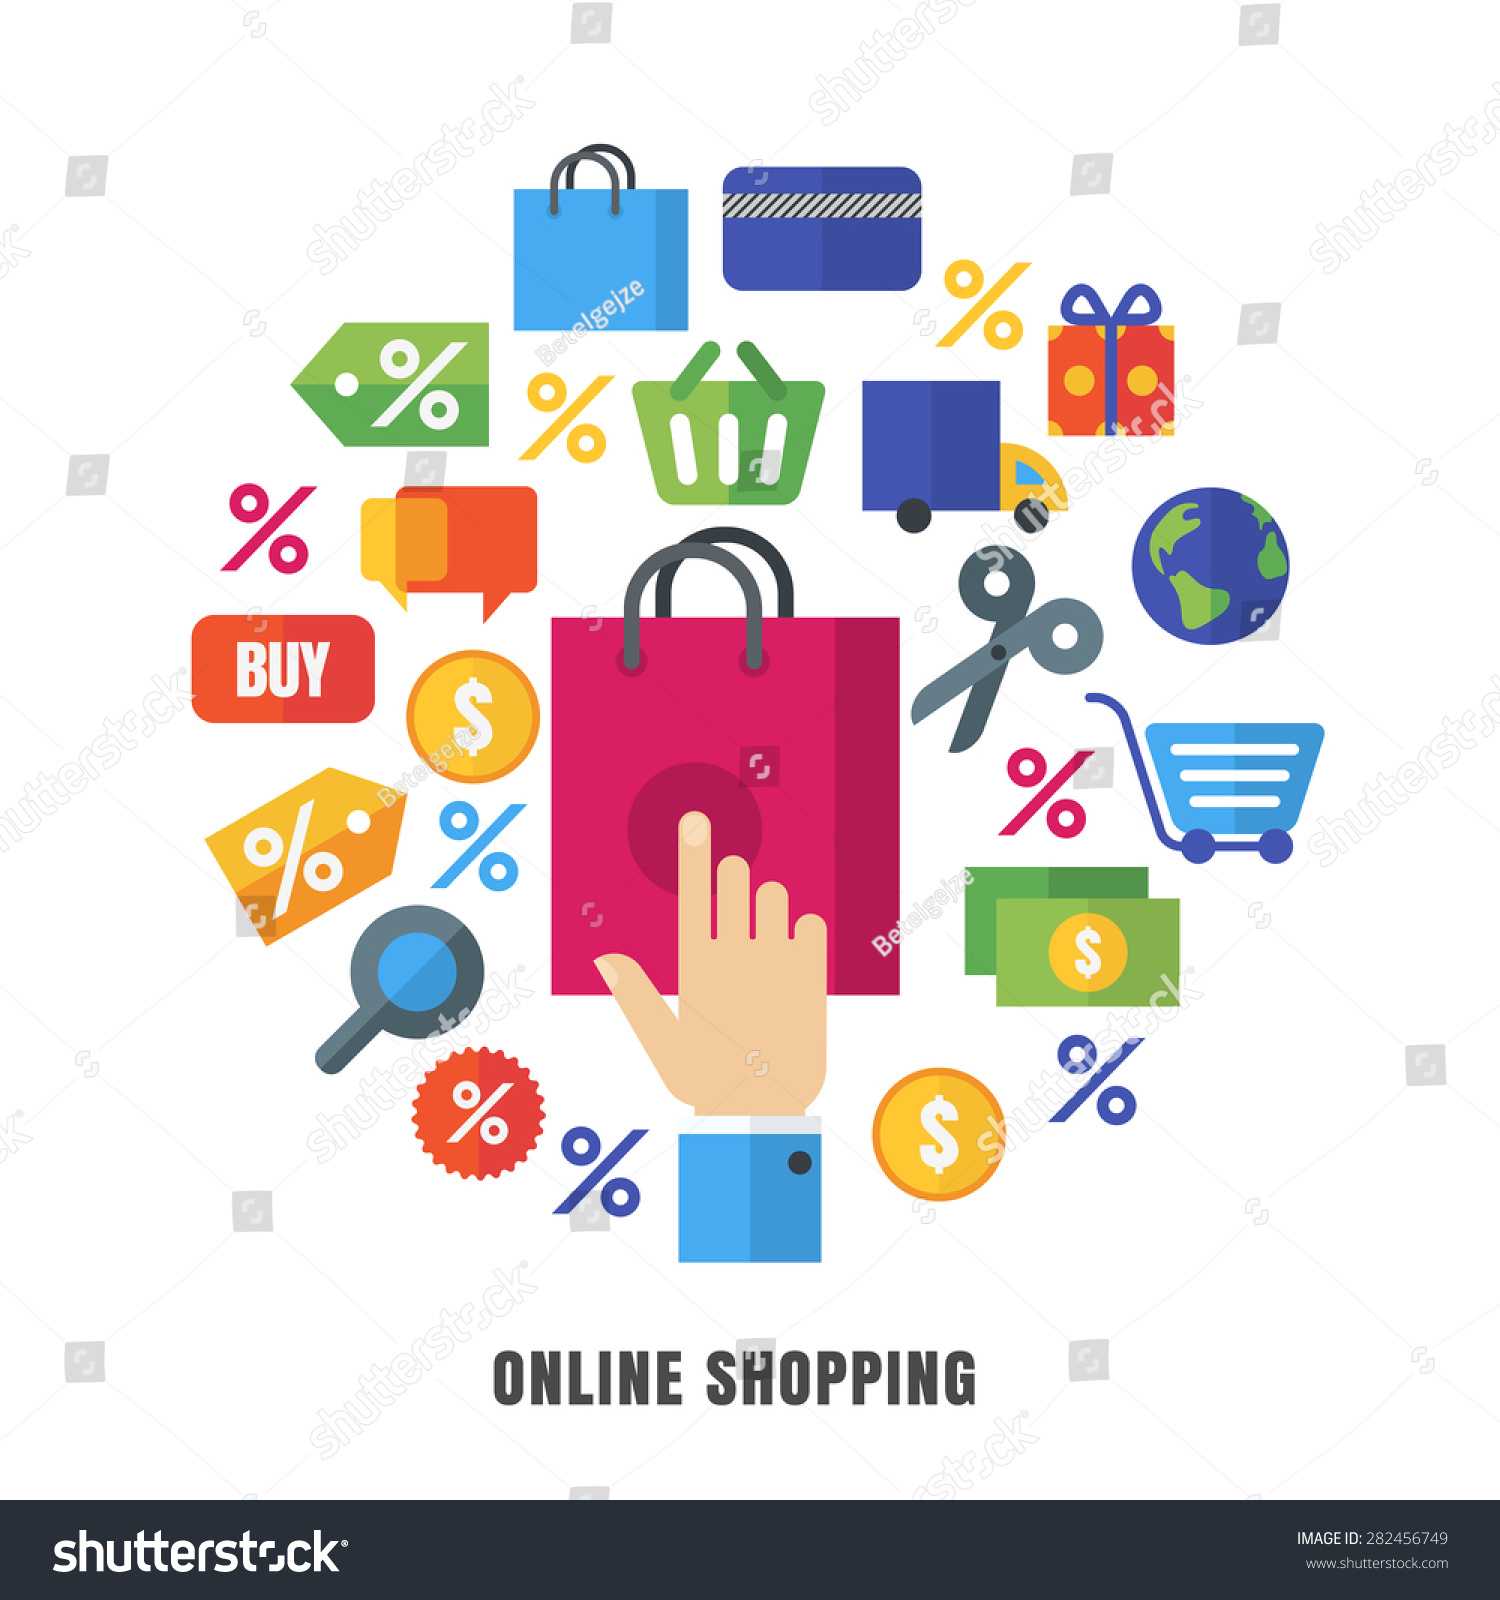 Design Outlet Online Online Shopping Vector Background Flat Ecommerce Stock